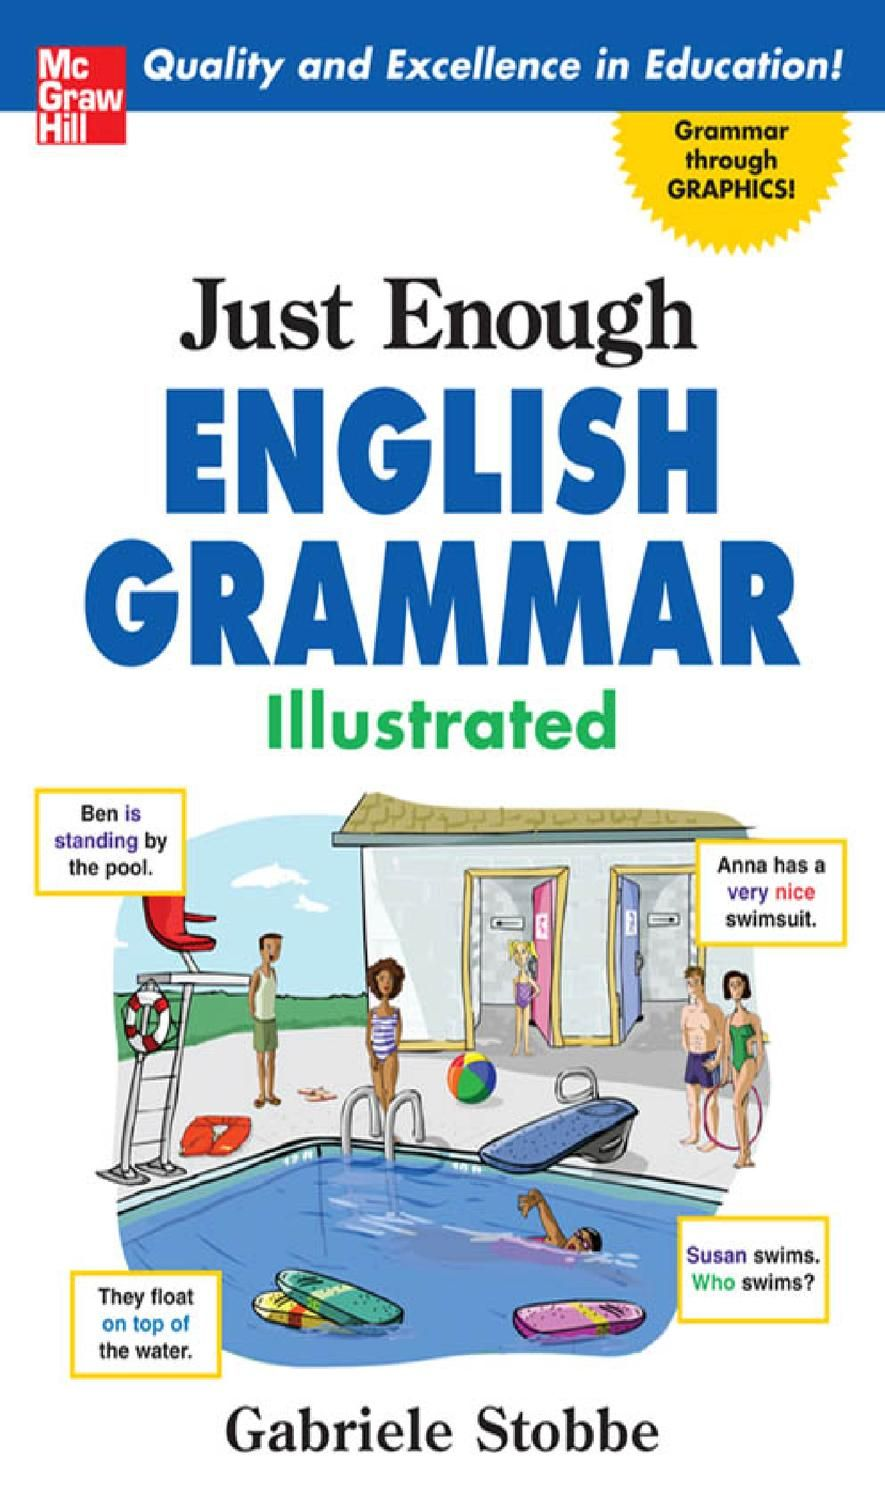 Just Enough English Grammar Illustrated  English grammar, Grammar  multiplication, alphabet worksheets, printable worksheets, grade worksheets, and free worksheets Online Grammar Worksheets 1500 x 885